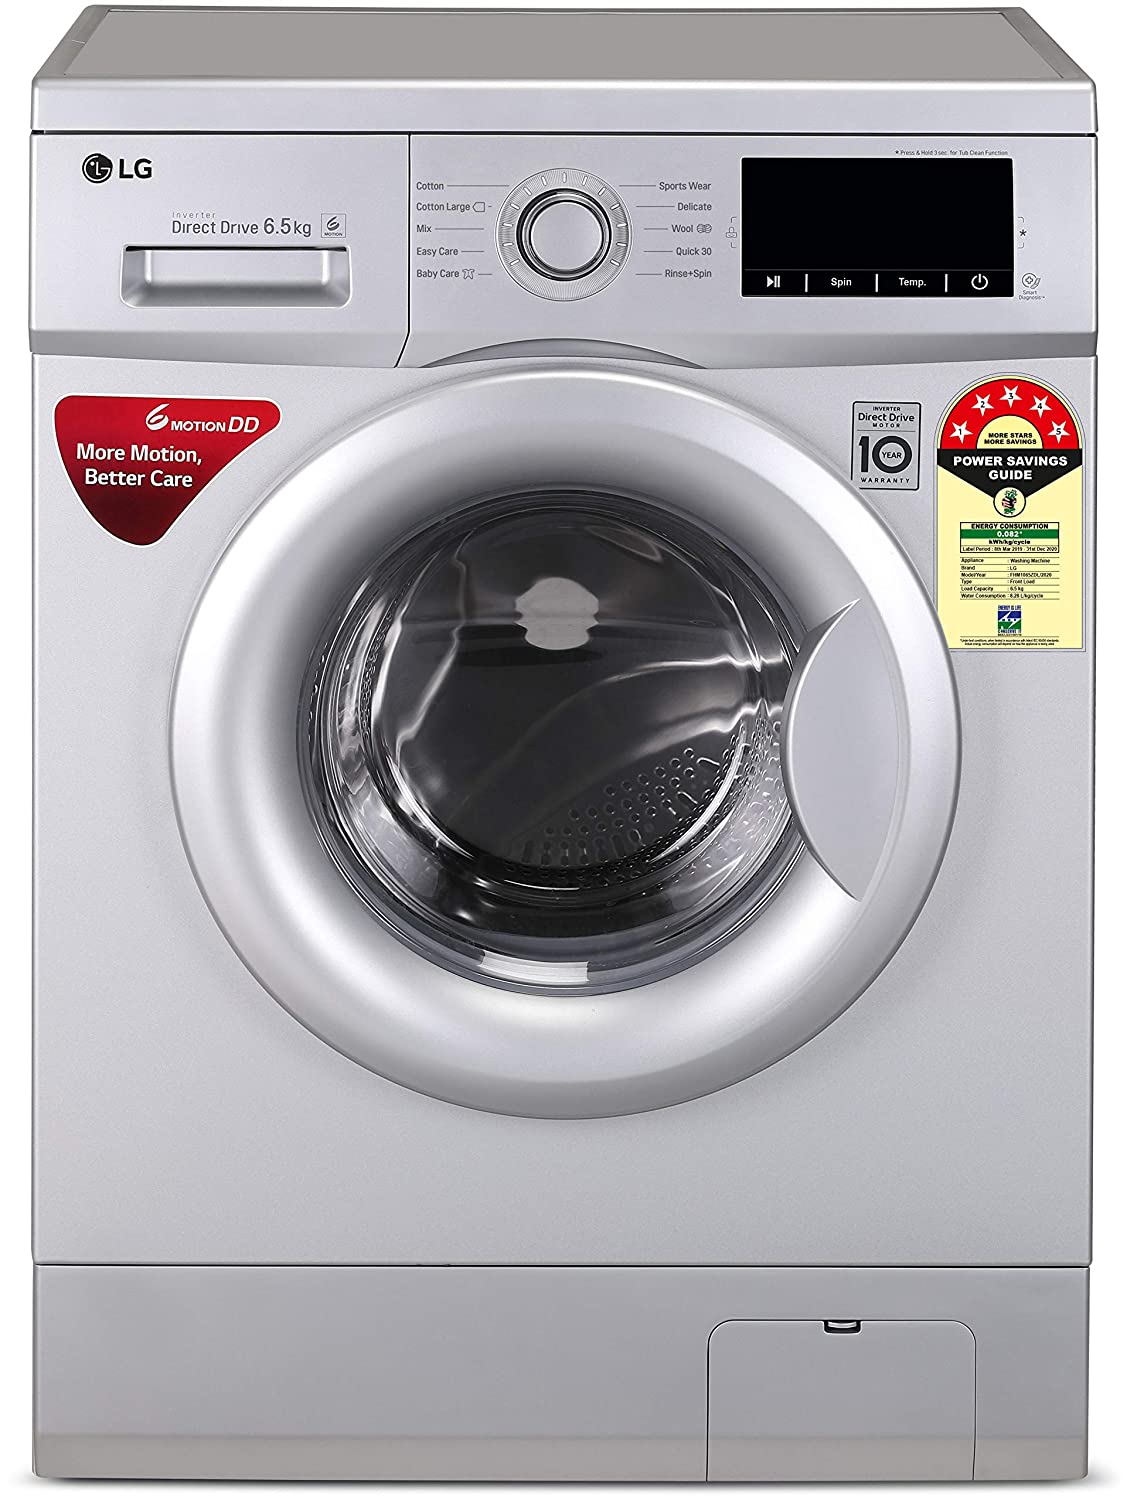 LG 6.5 Kg 5 Star Inverter Fully Automatic Front Loading Washing Machine  FHM1065ZDL, Luxury Silver, Direct Drive Technology  Washing Machines   Dryers